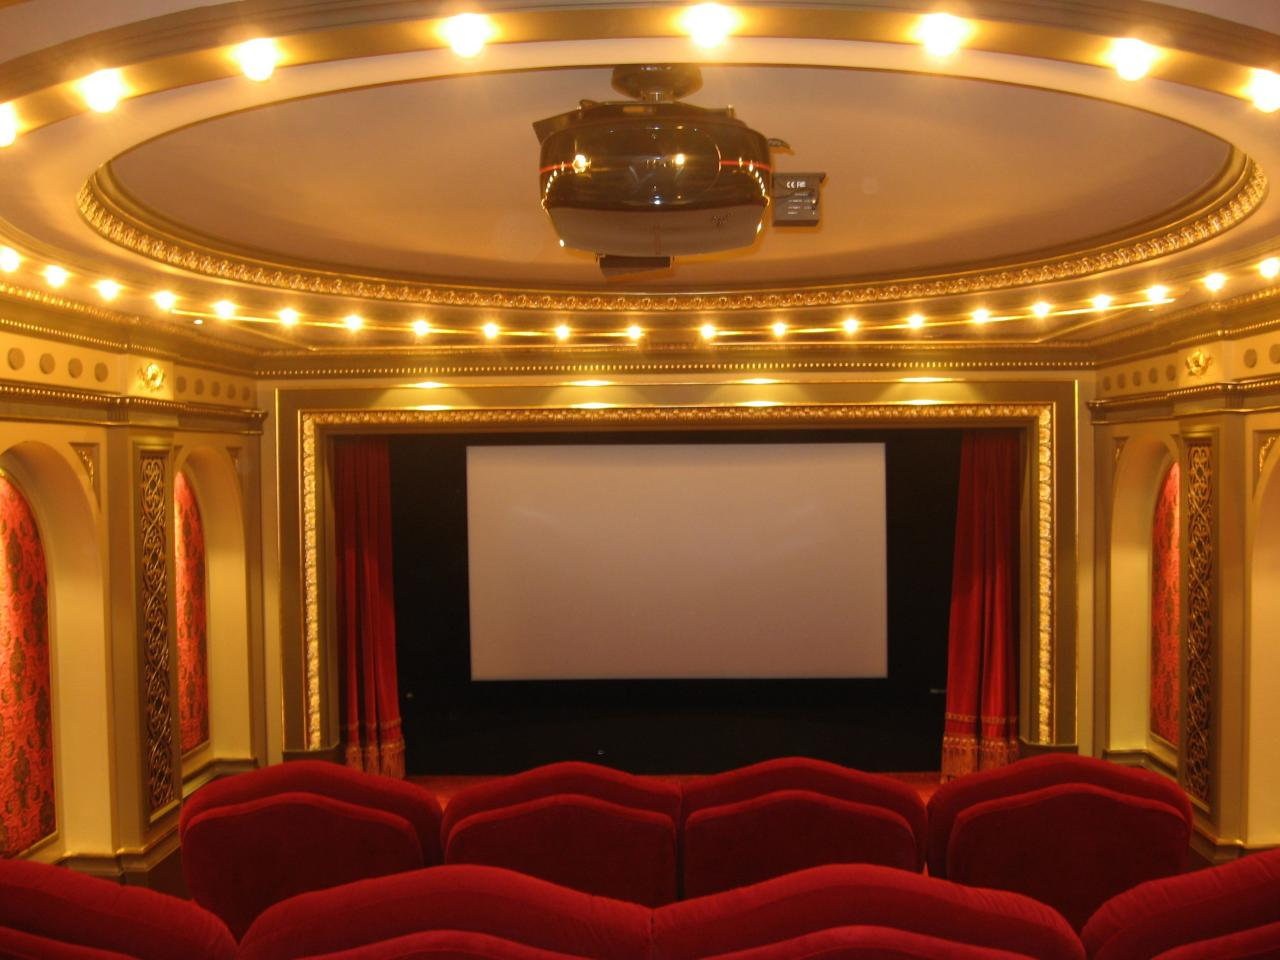 Home Theater Design Ideas best home theater design ideas remodel pictures houzz Related To Designing Home Theater Decorating